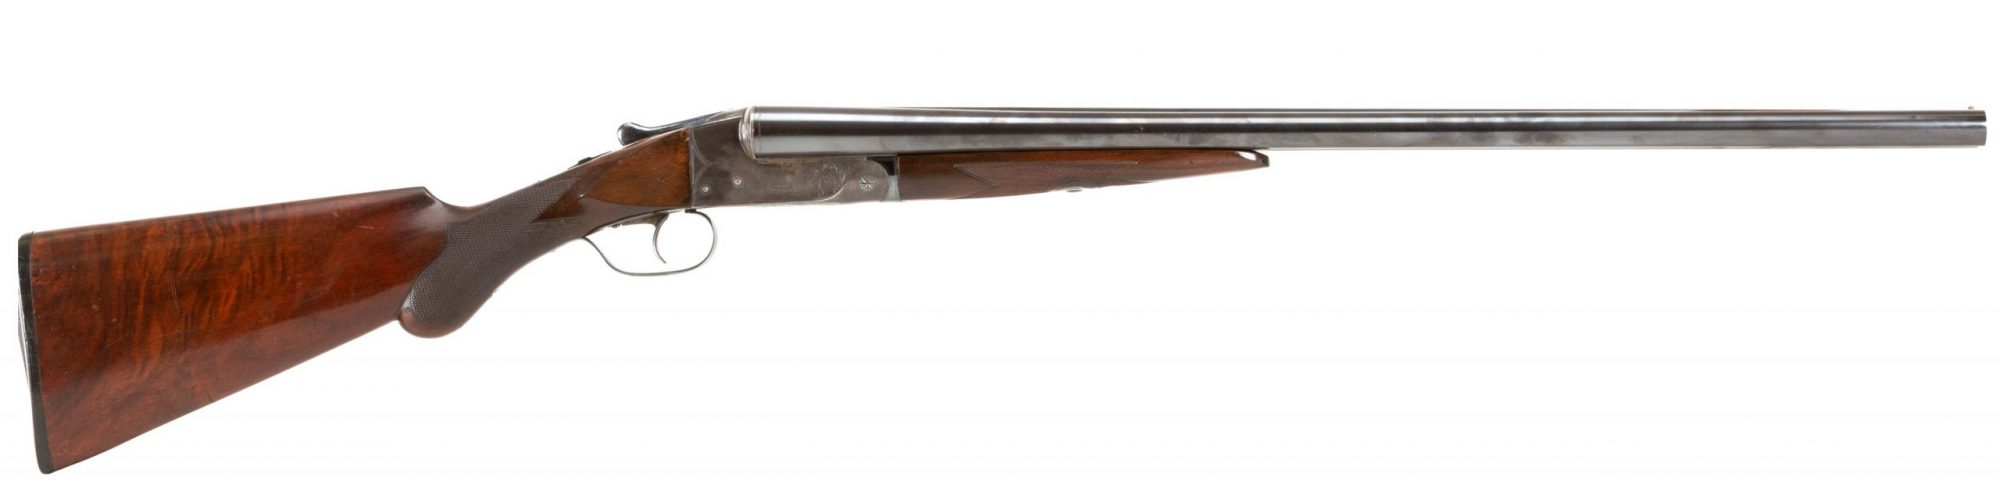 Photo of pre-owned Ithaca Double 12 gauge shotgun, sold as-is by Turnbull Restoration